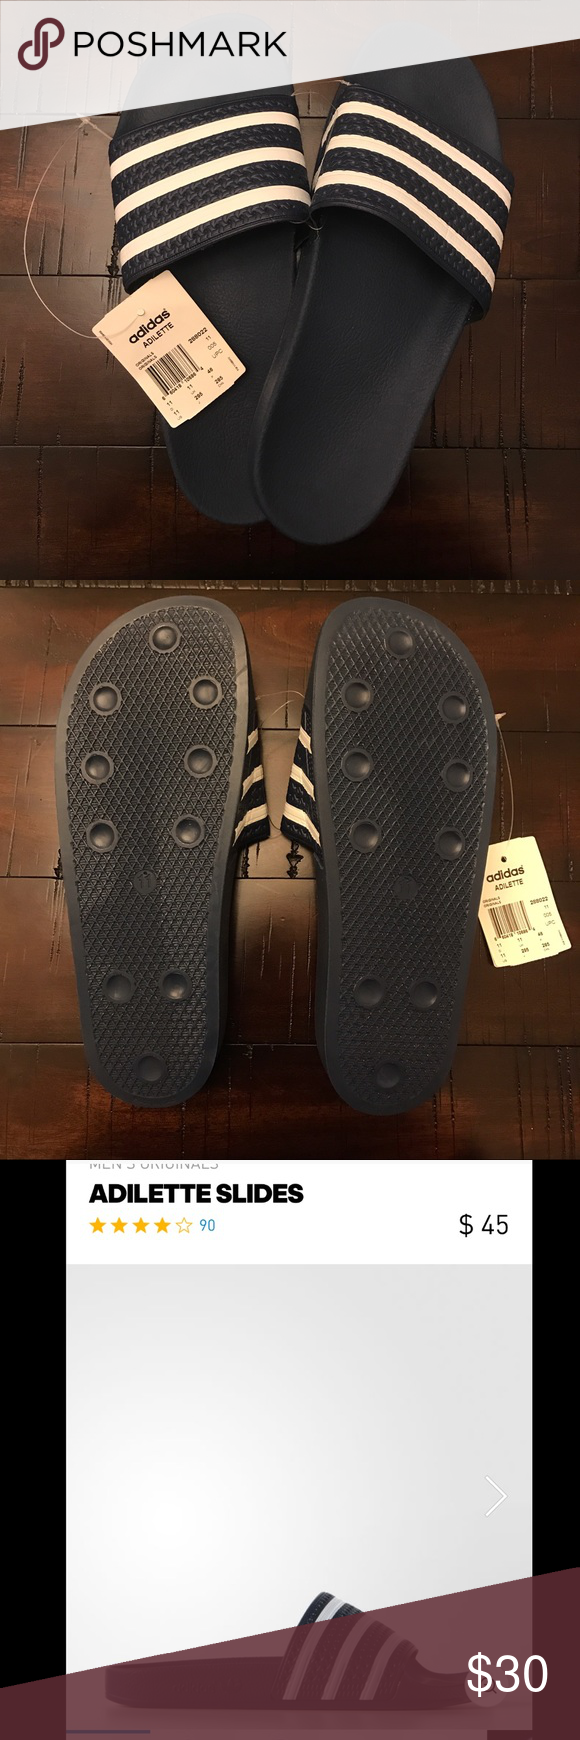 Adidas Adilette Originals adidas Adilette Originals in Navy! All offers will be considered. Brand new with Tags! Adidas Shoes Sandals & Flip-Flops